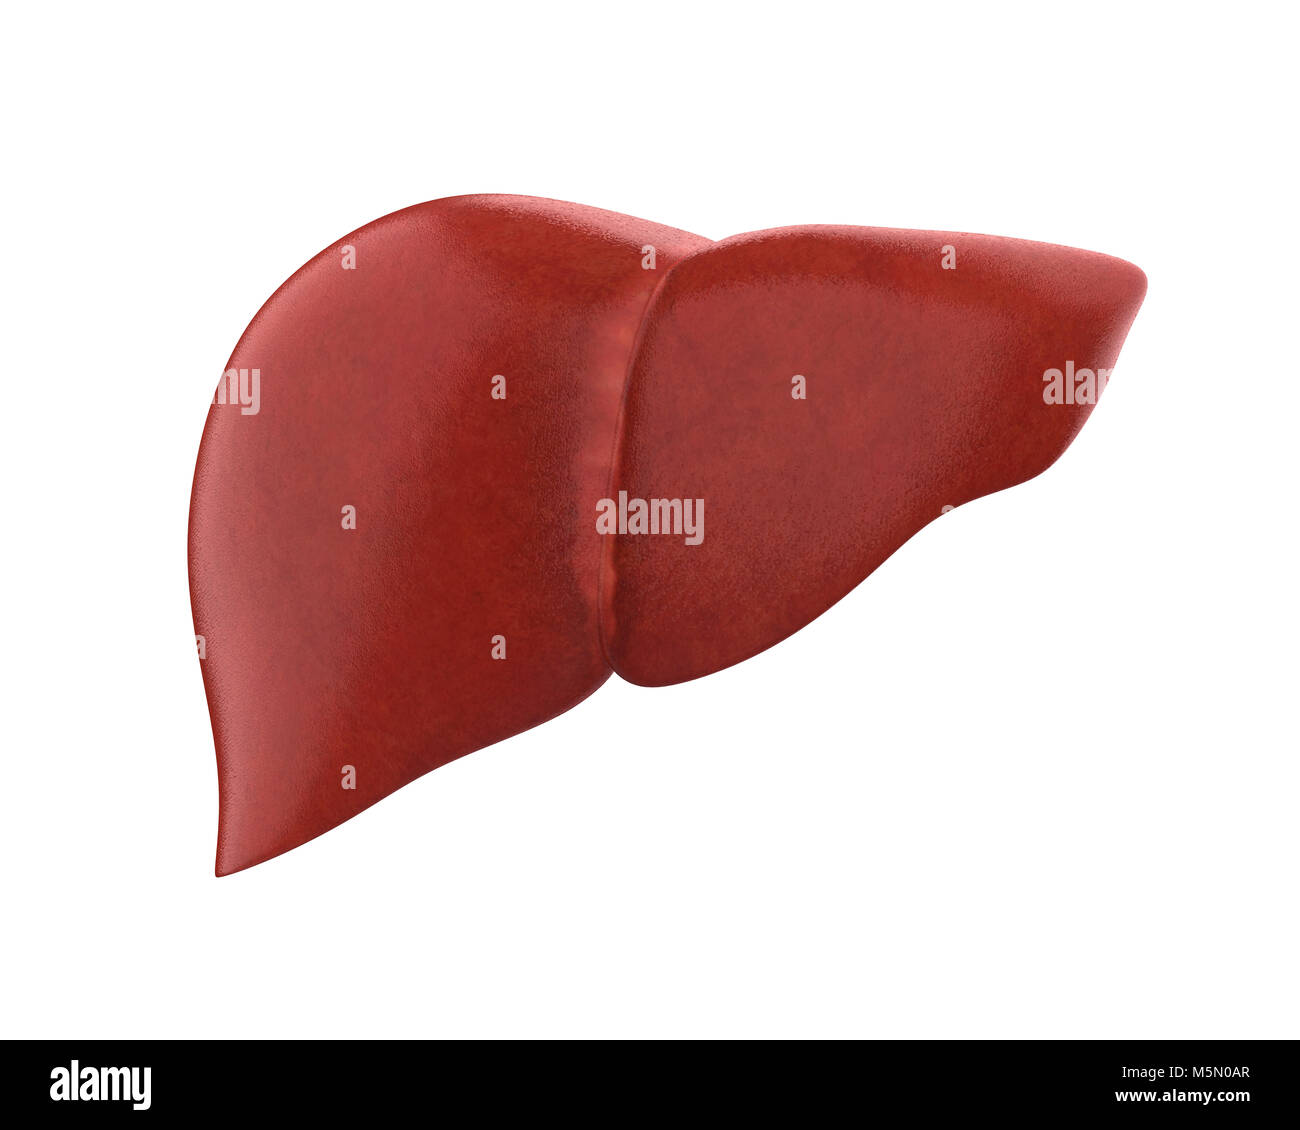 Liver Anatomy Stock Photos Liver Anatomy Stock Images Alamy